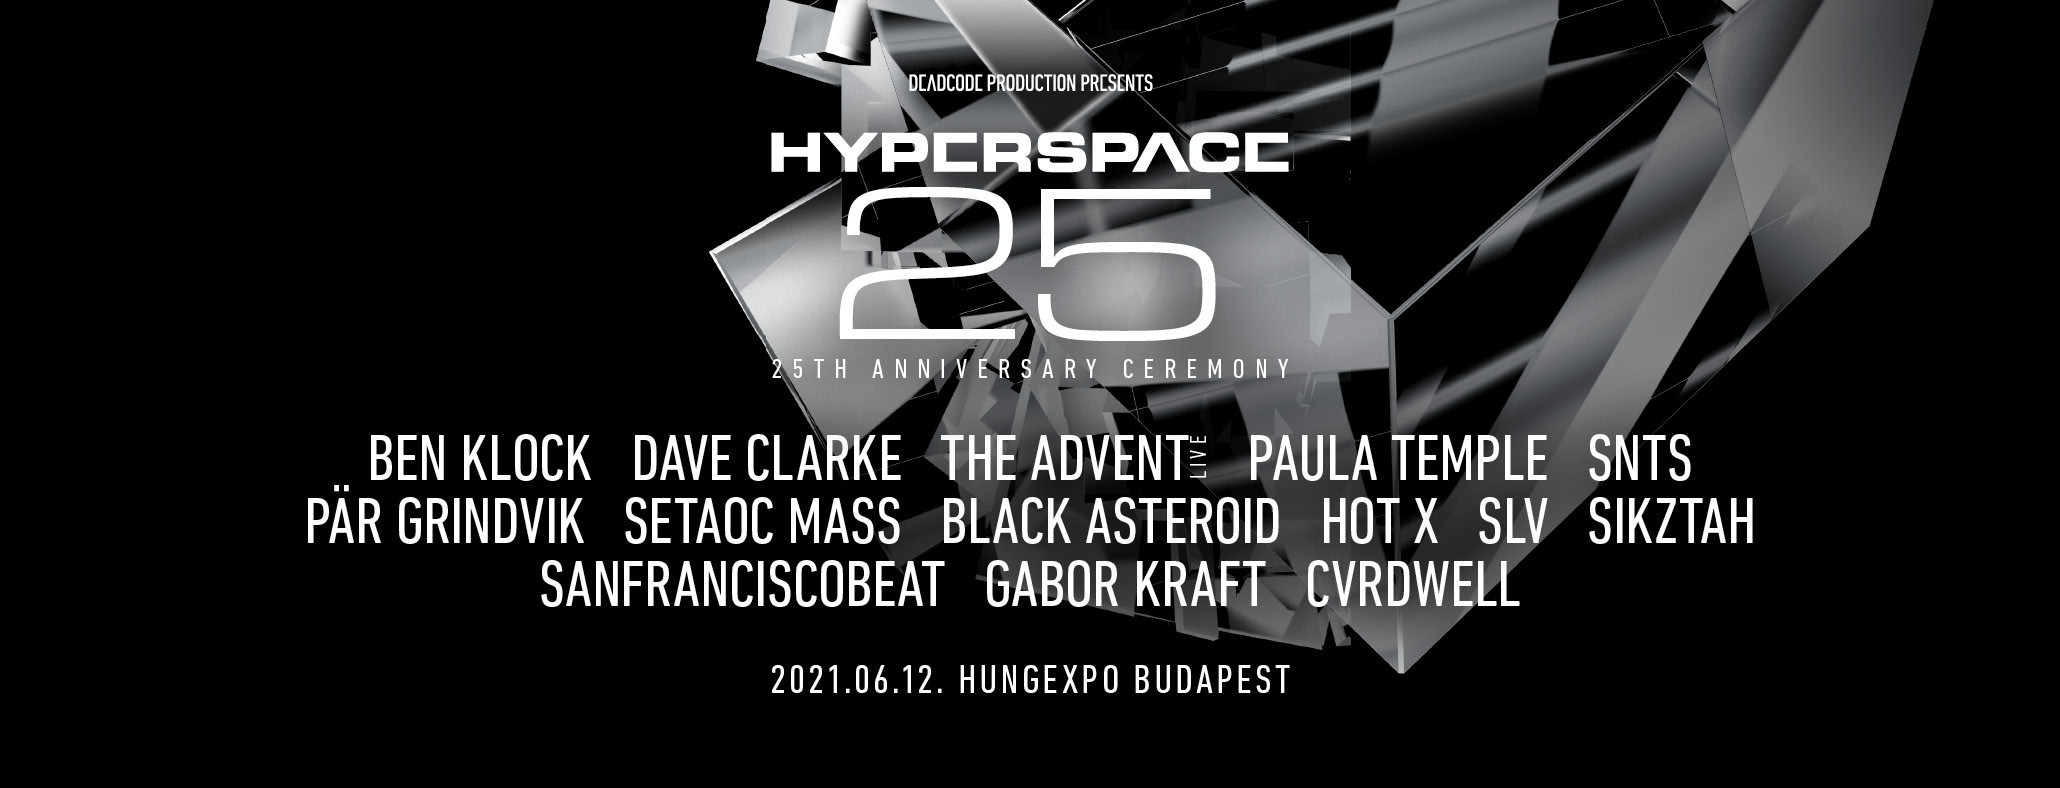 HYPERSPACE 2021 - 25TH ANNIVERSARY CEREMONY